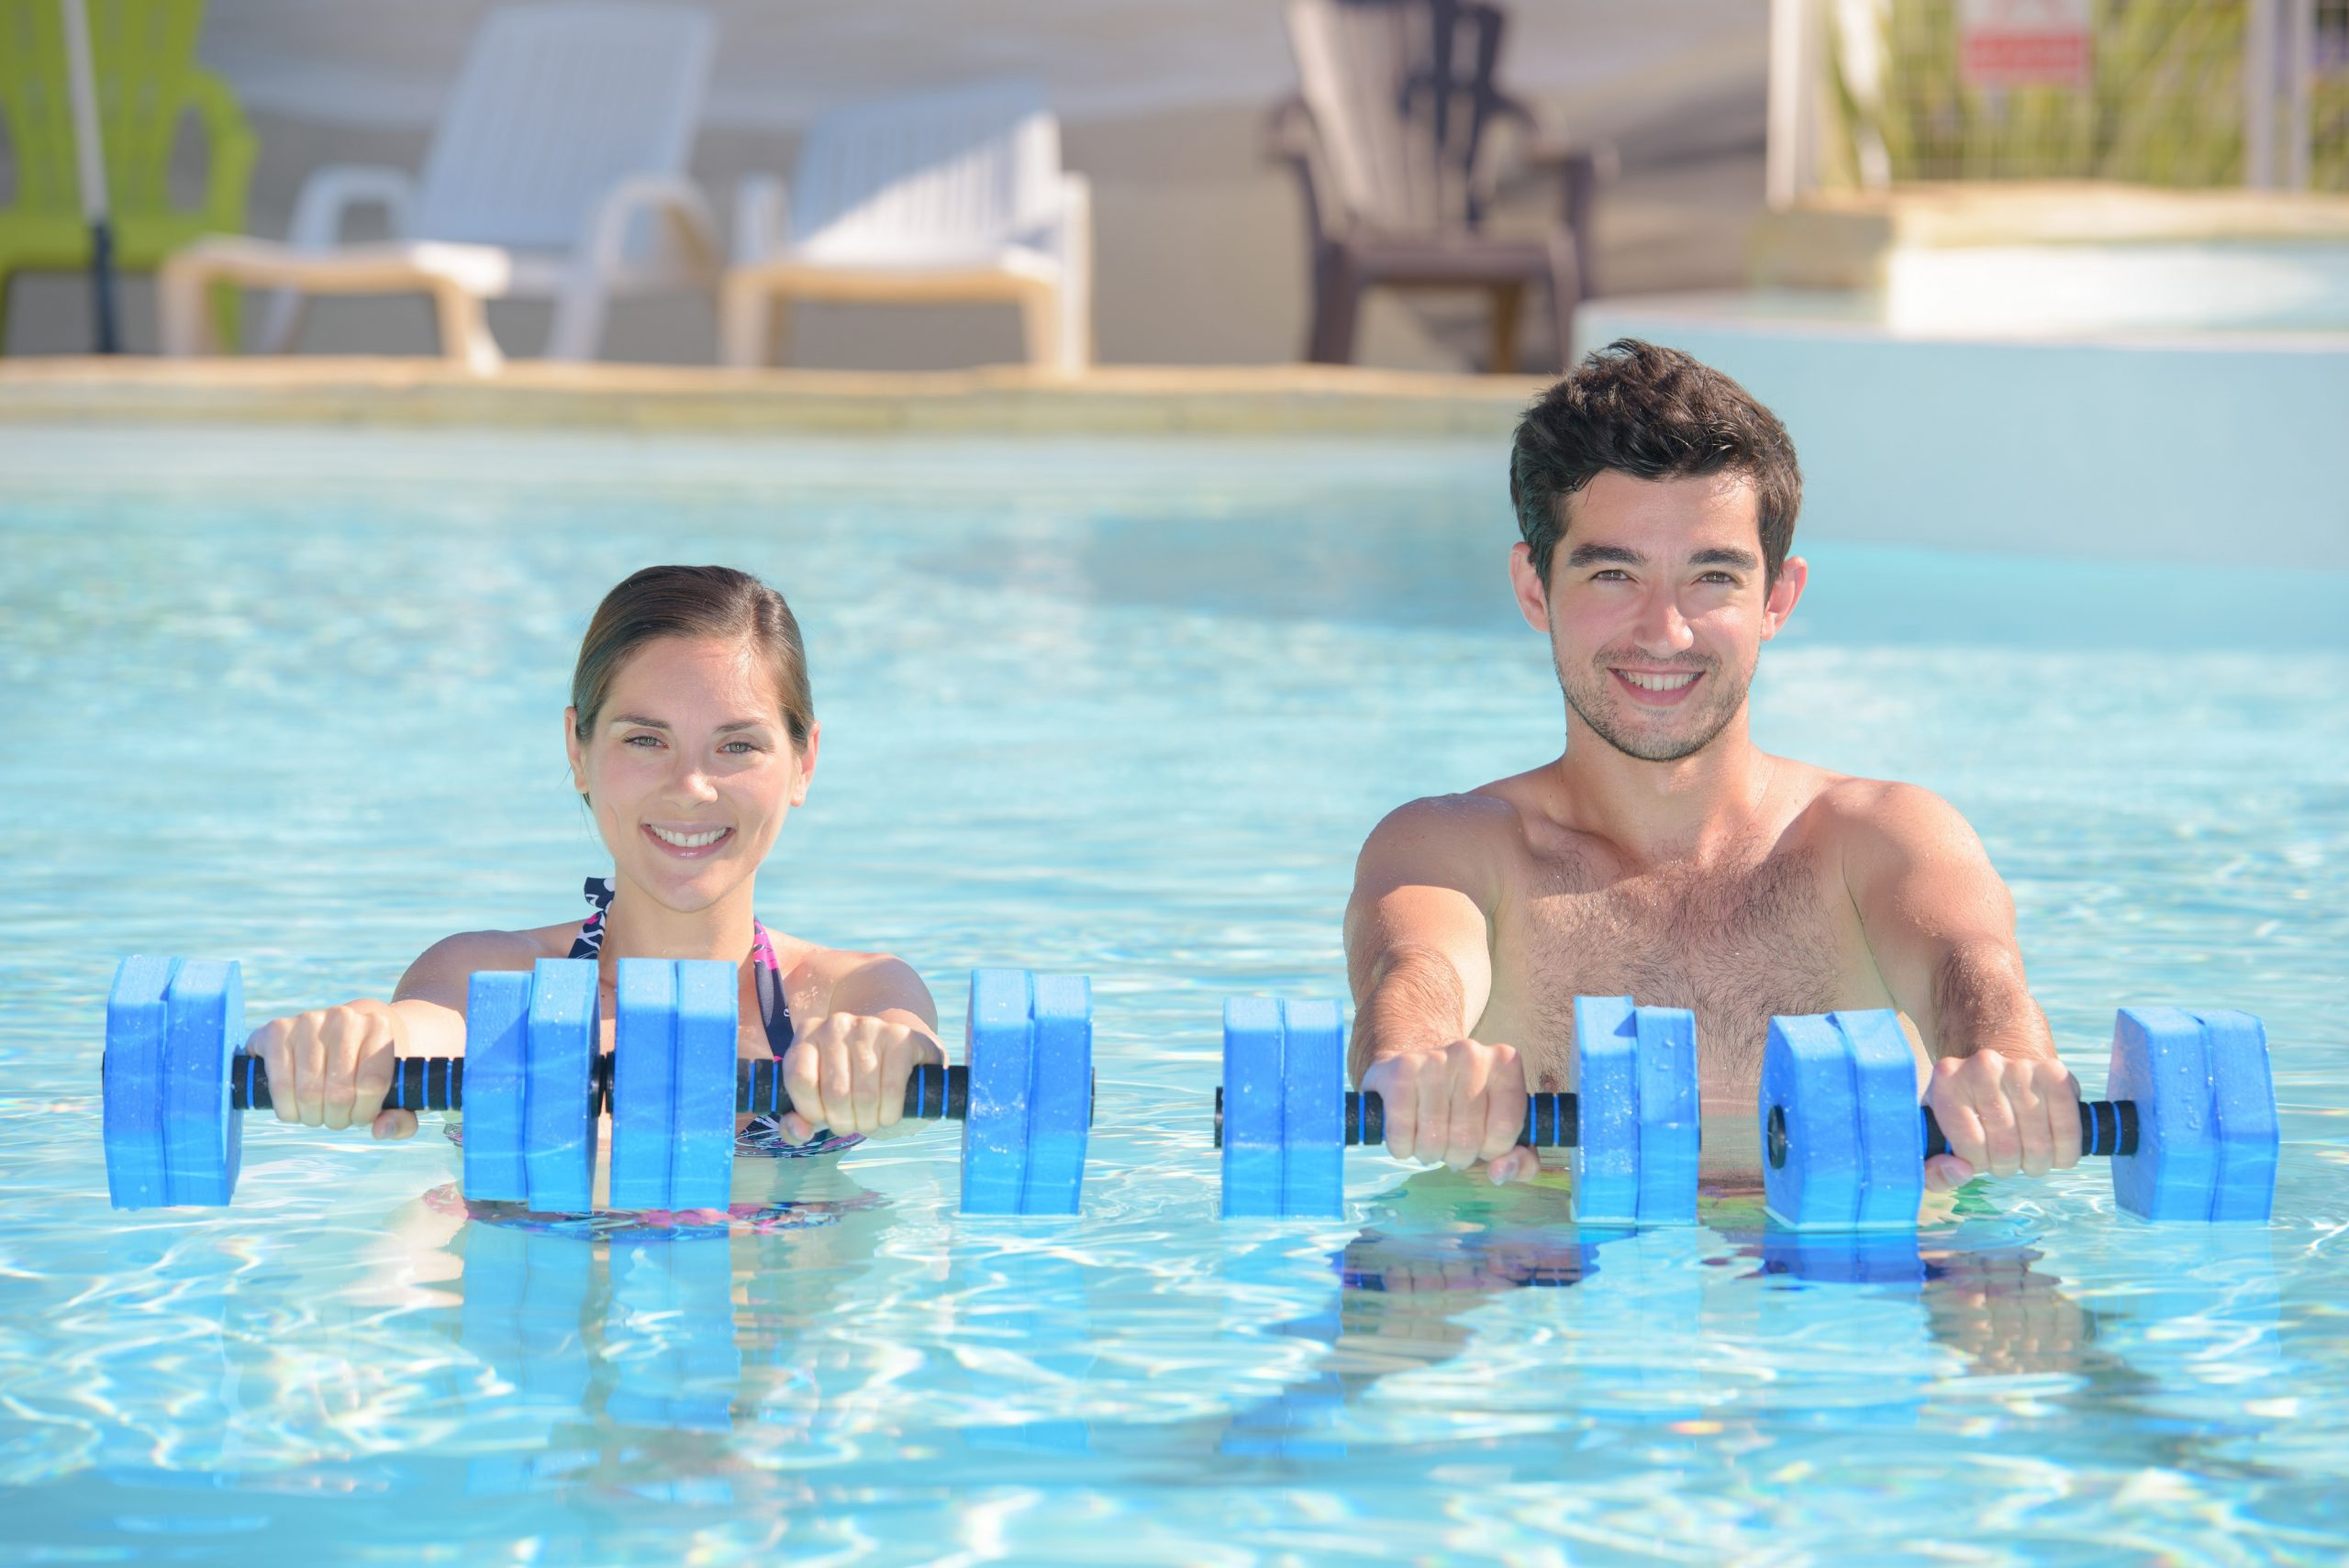 A couple using water weights in an outdoor pool